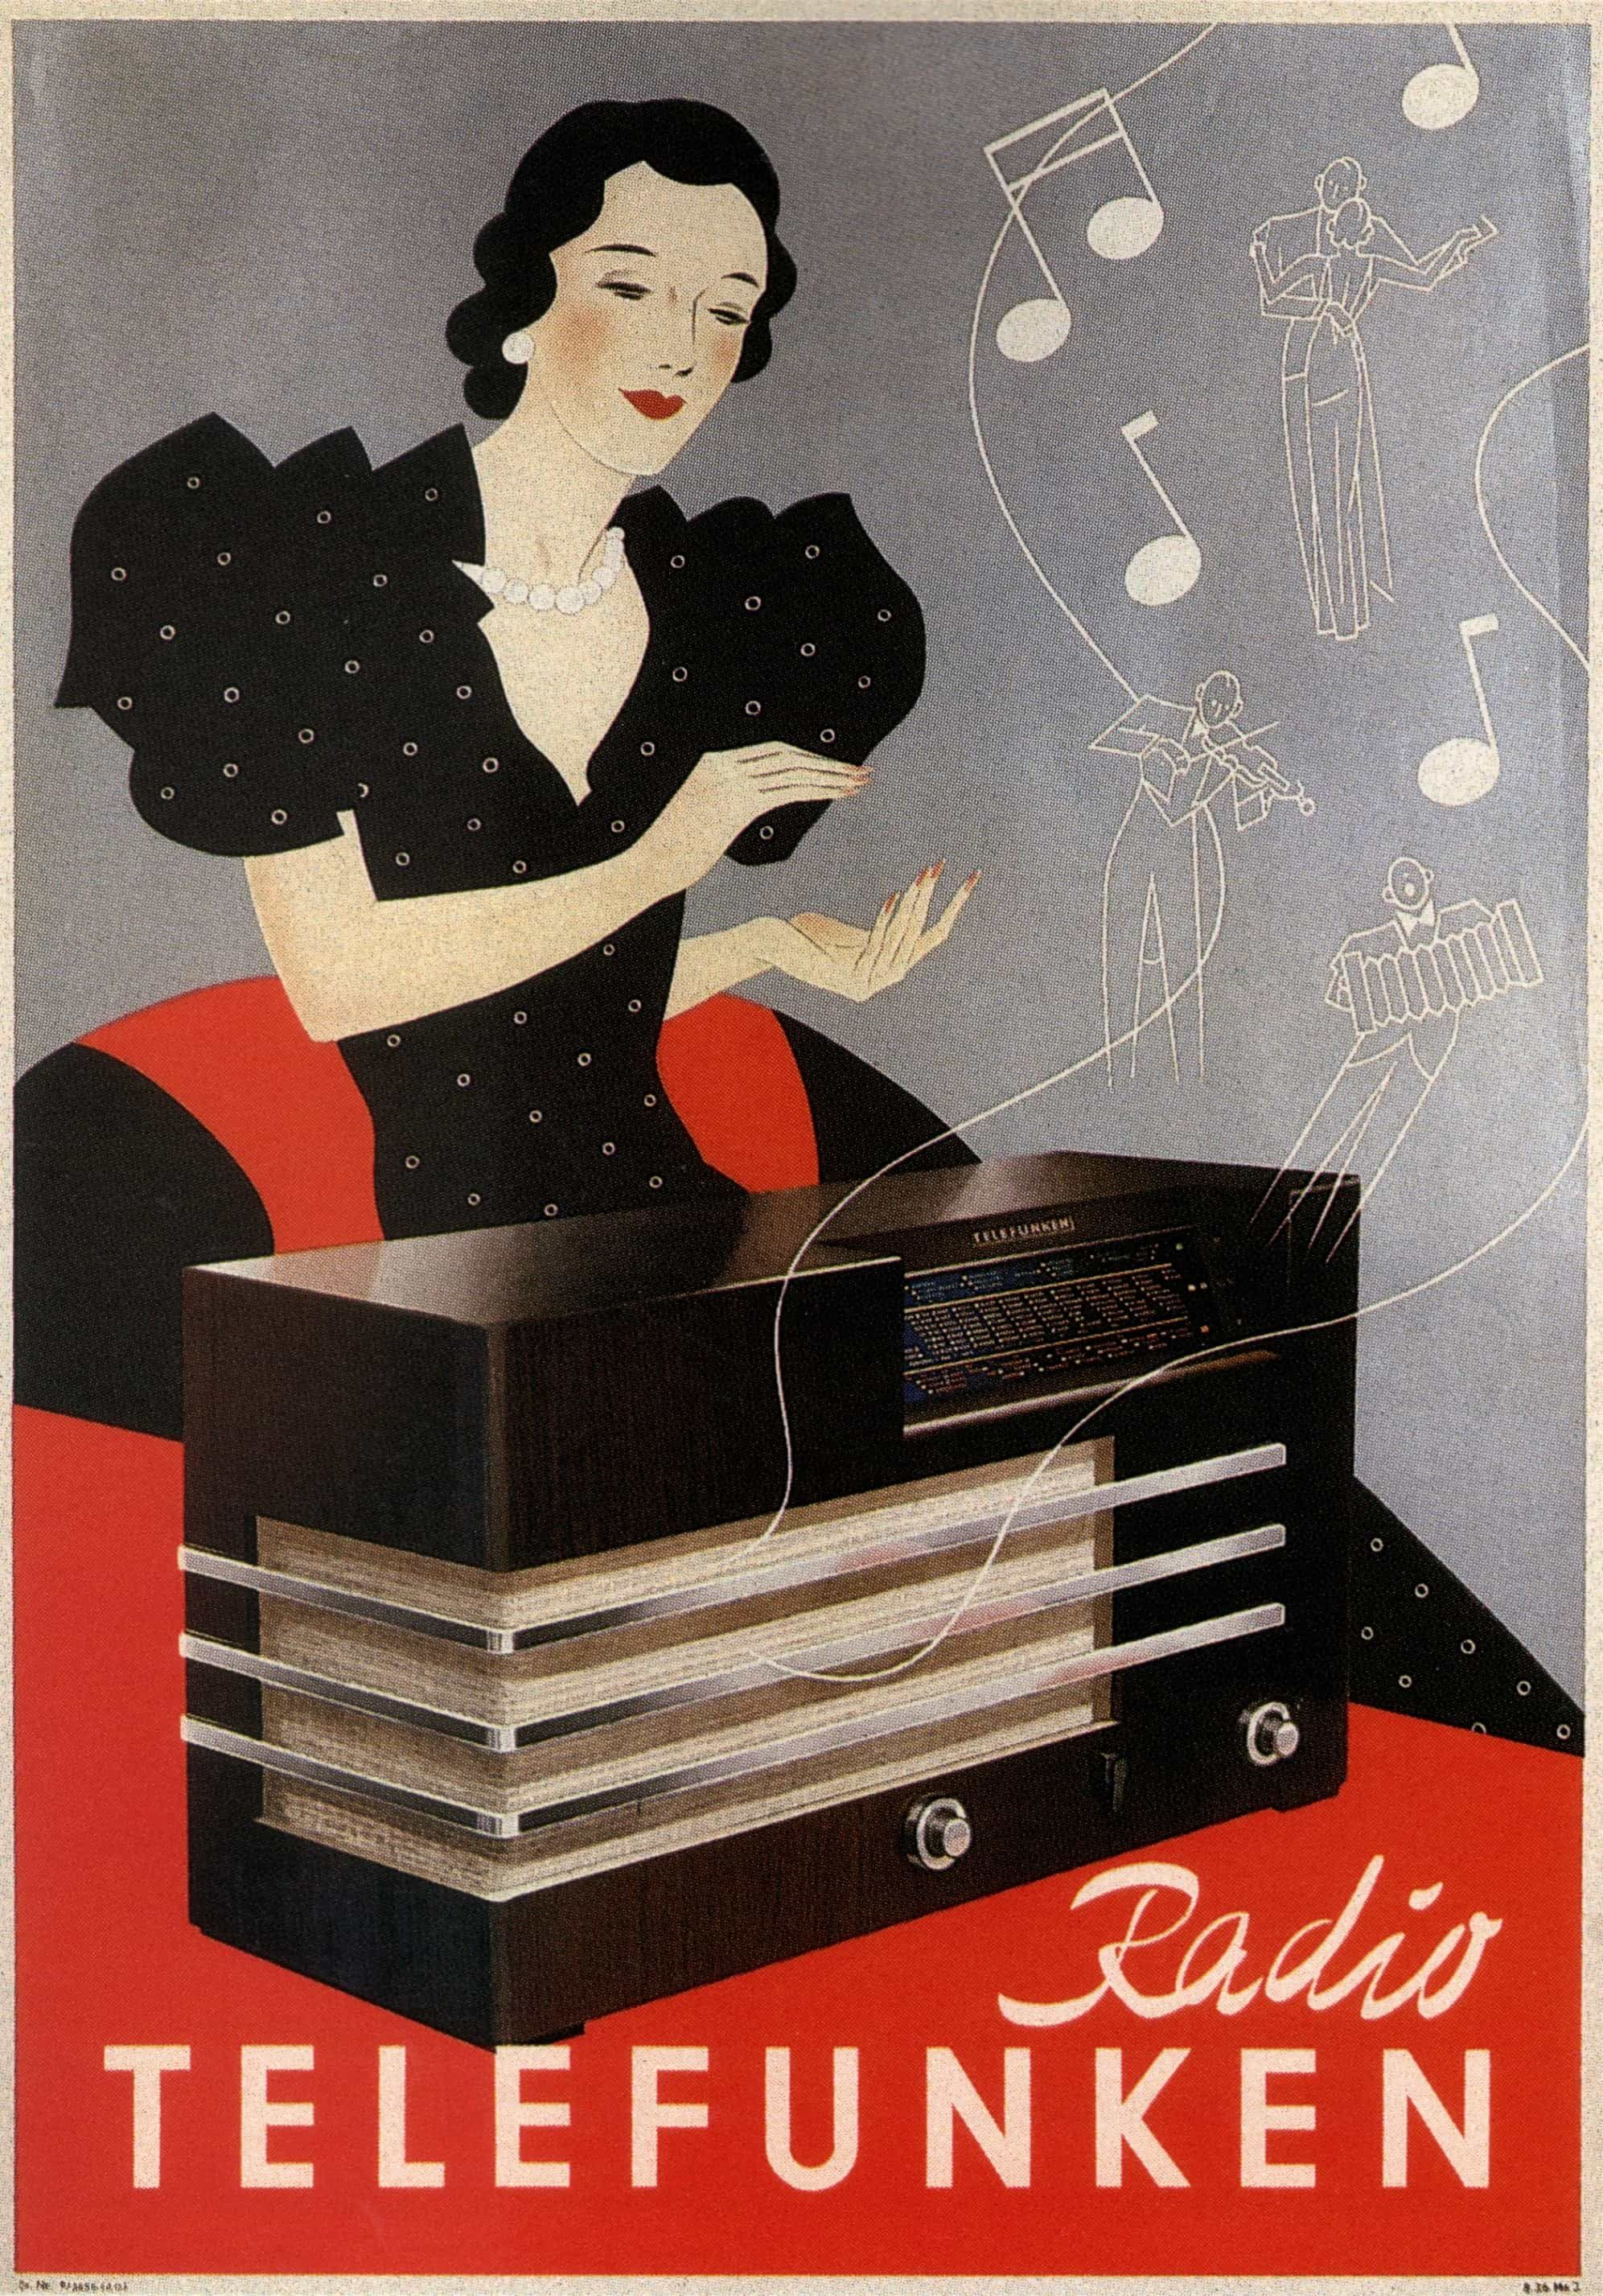 1935 Radio Telefunken Vintage Ad Poster Classic High Resolution Old